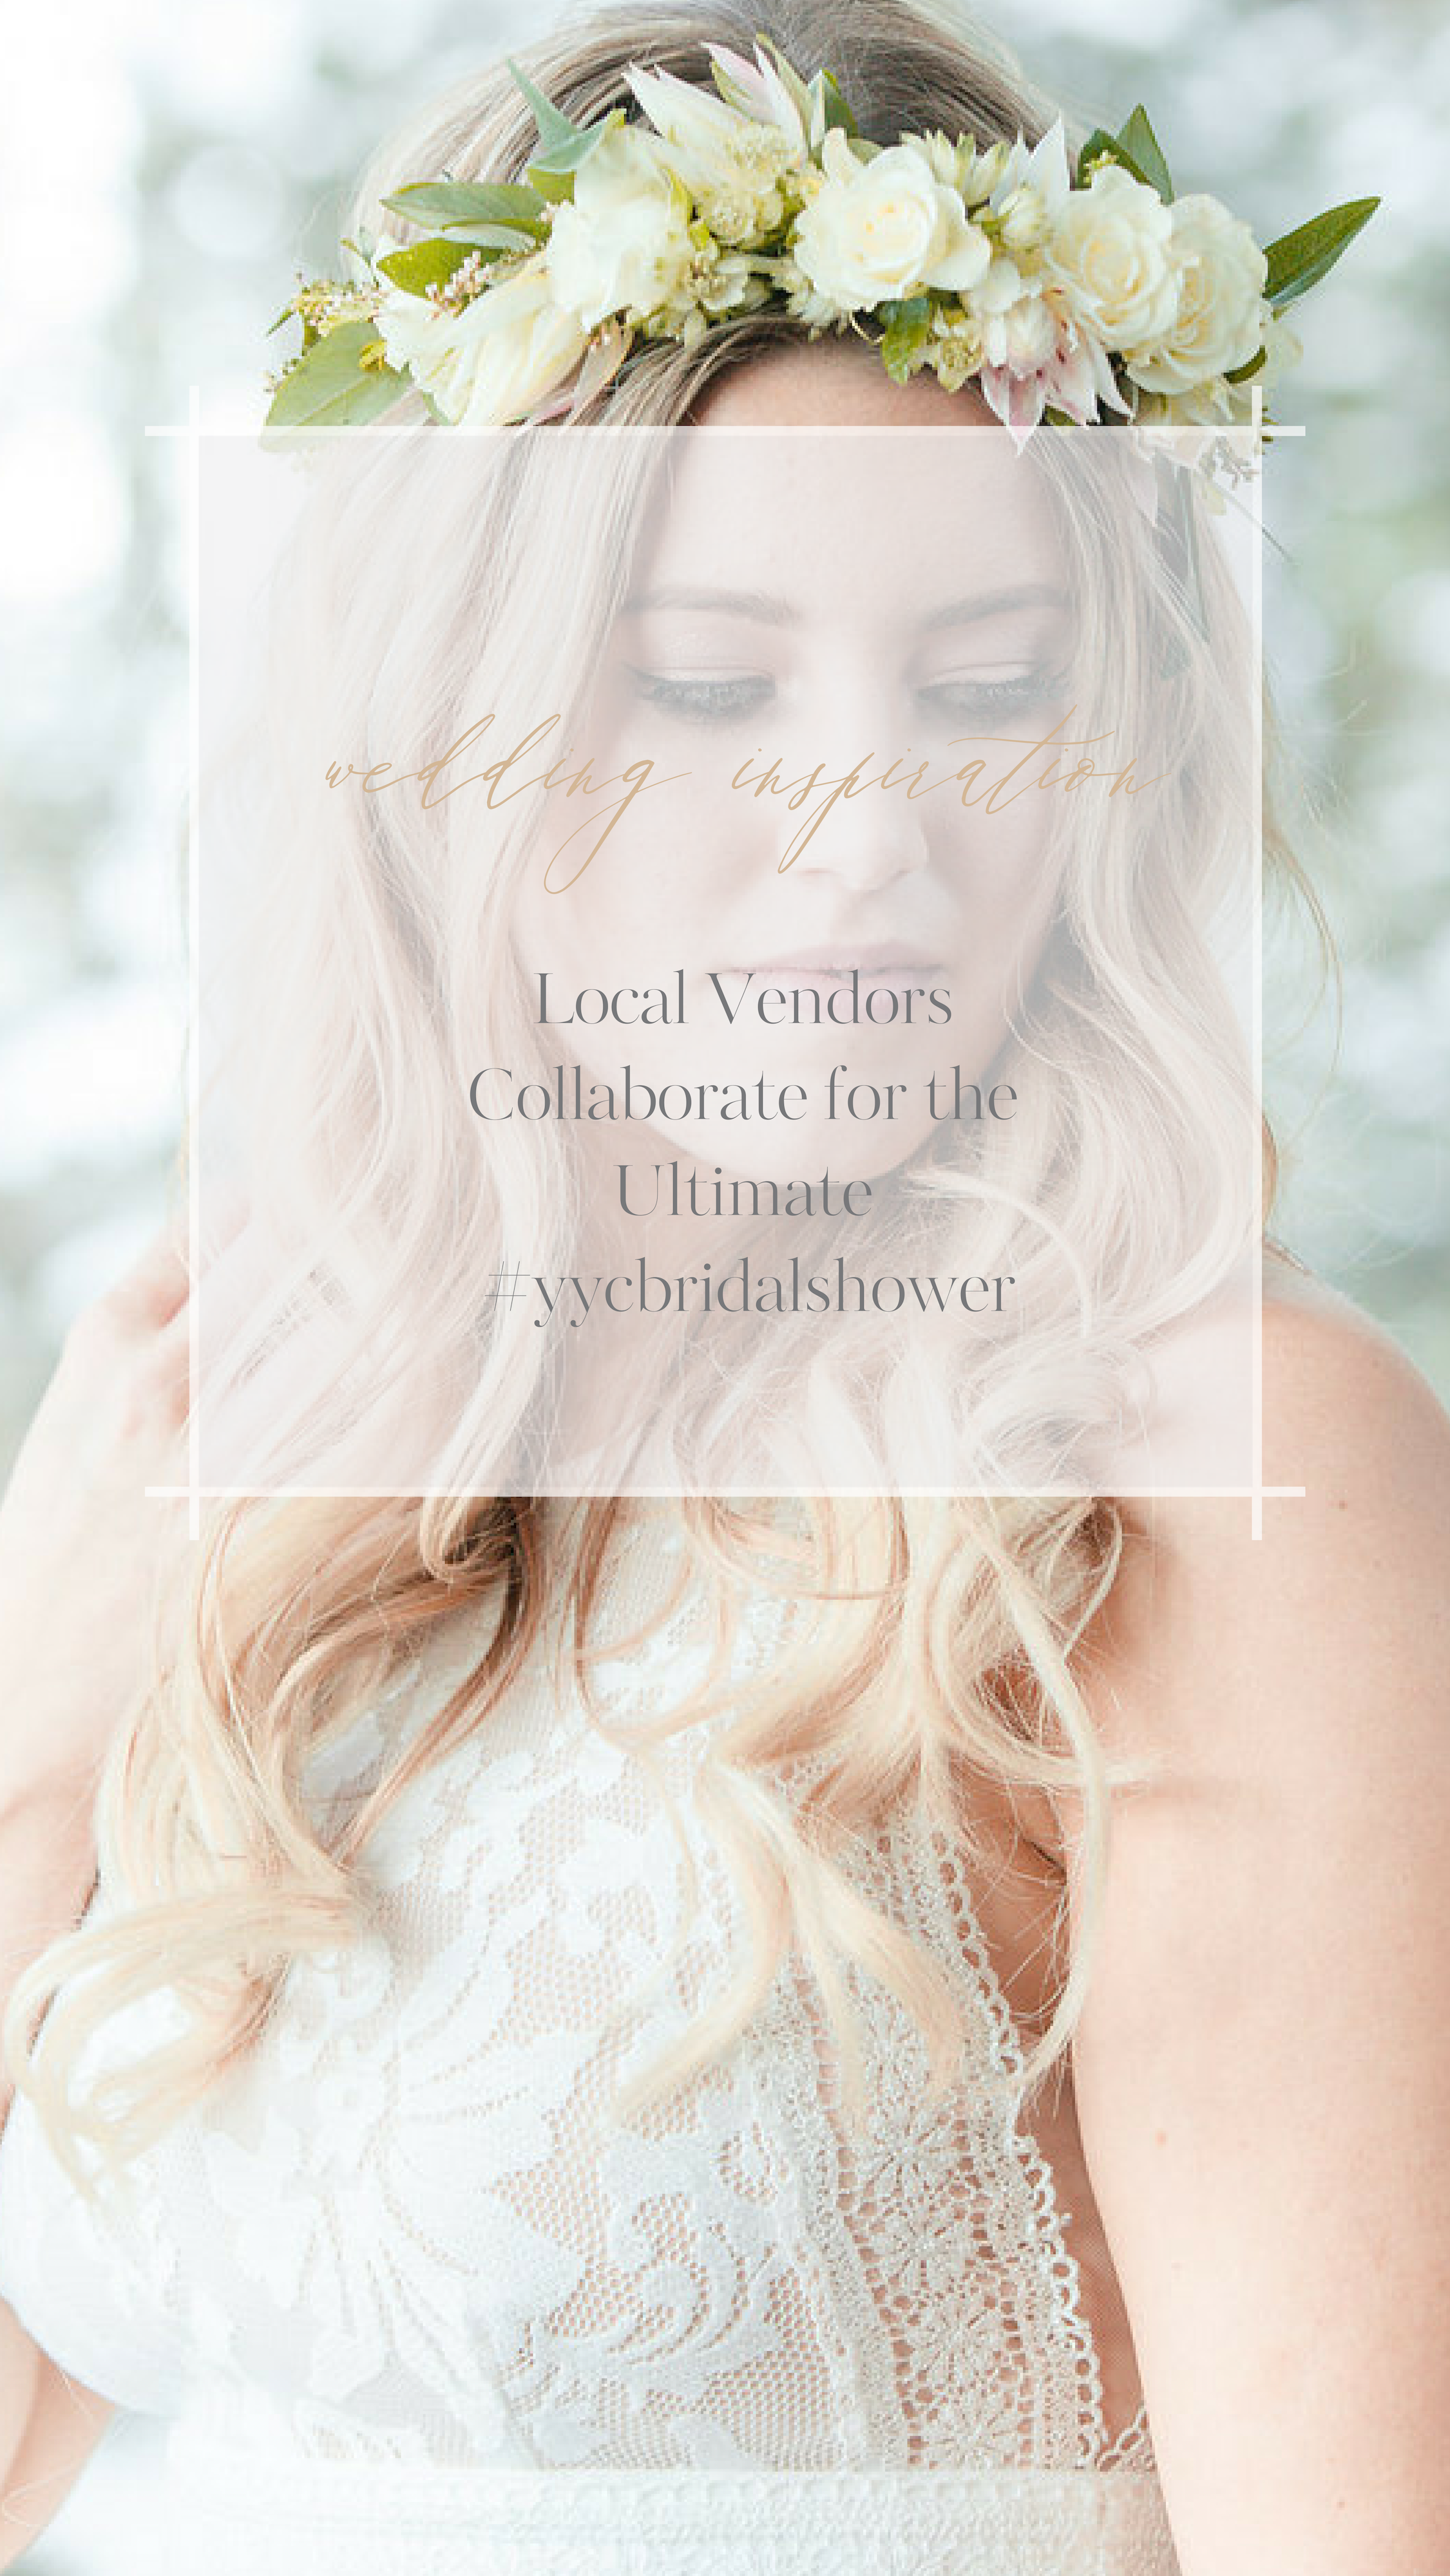 Local Vendors Collaborate for the Ultimate #yycbridalshower.png